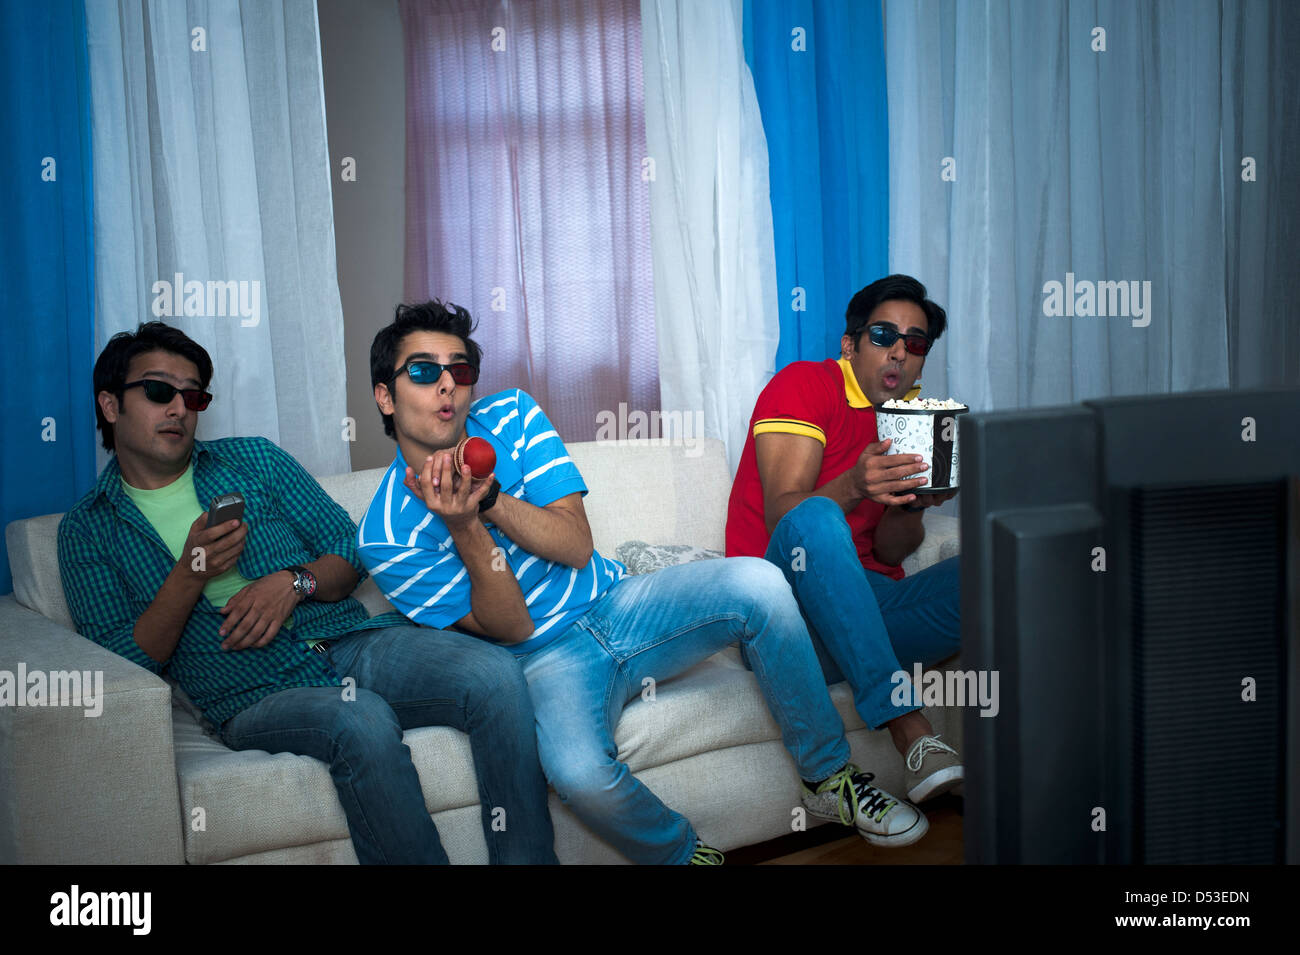 Friends watching cricket match on the television with 3-D glasses at home - Stock Image